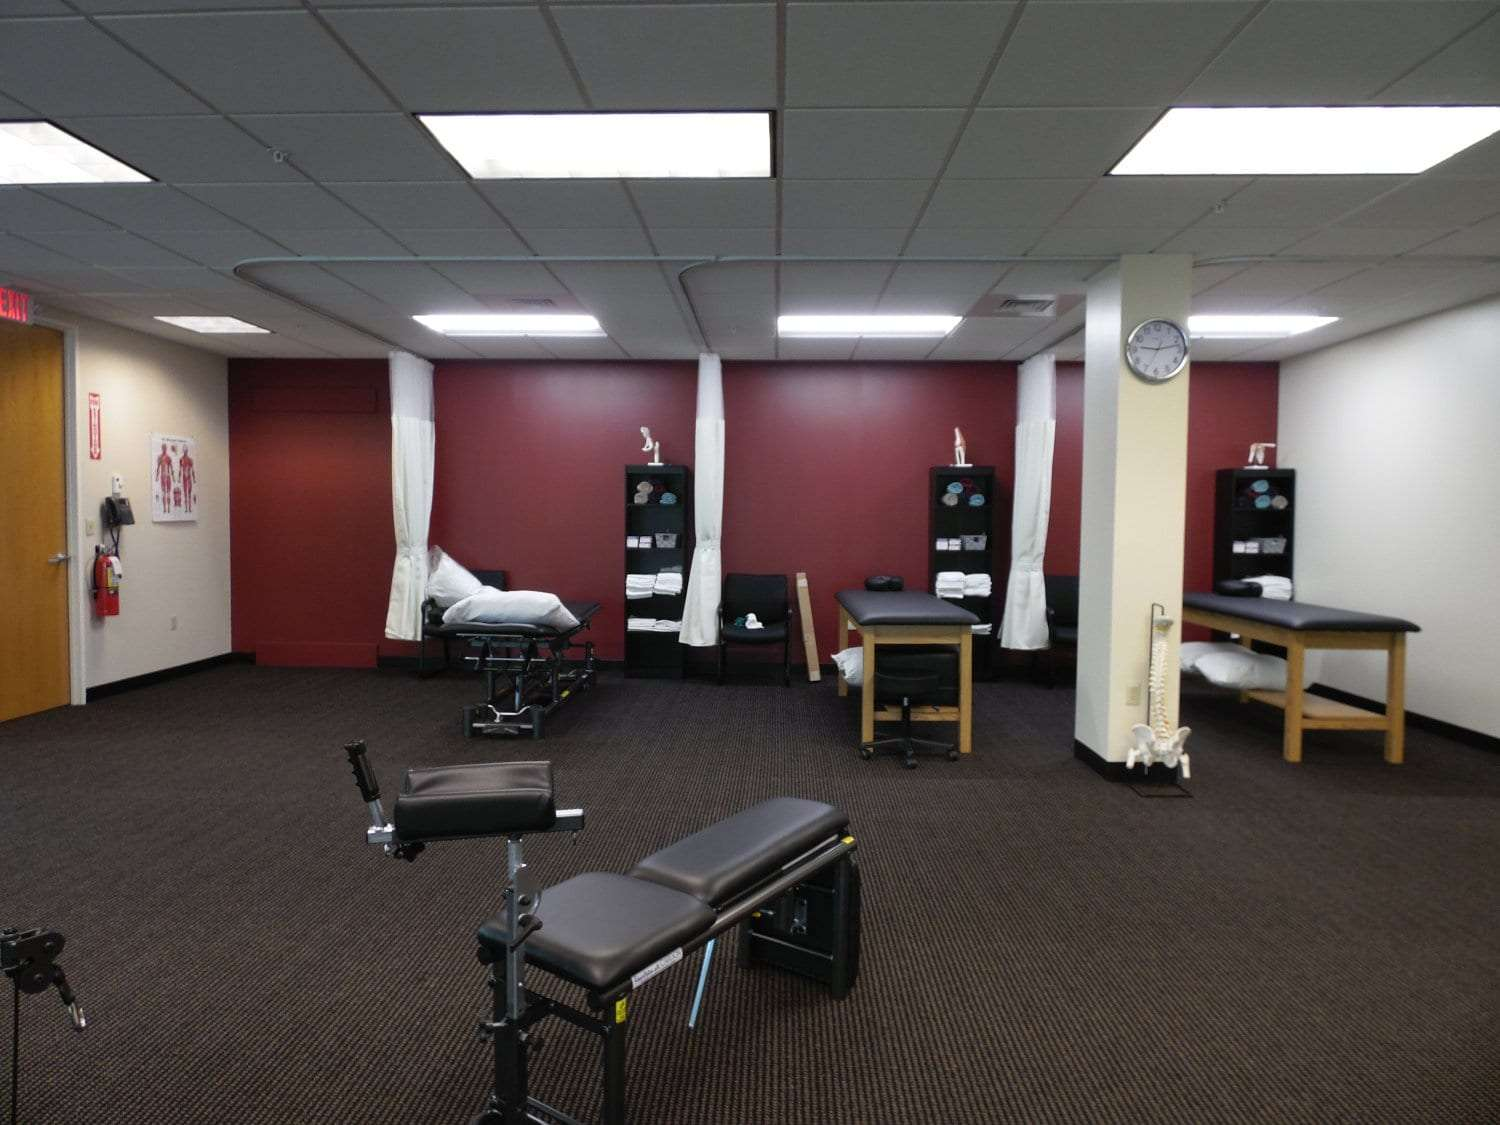 Here is an image of our stretch beds in our physical therapy clinic in Andover, Massachusetts.